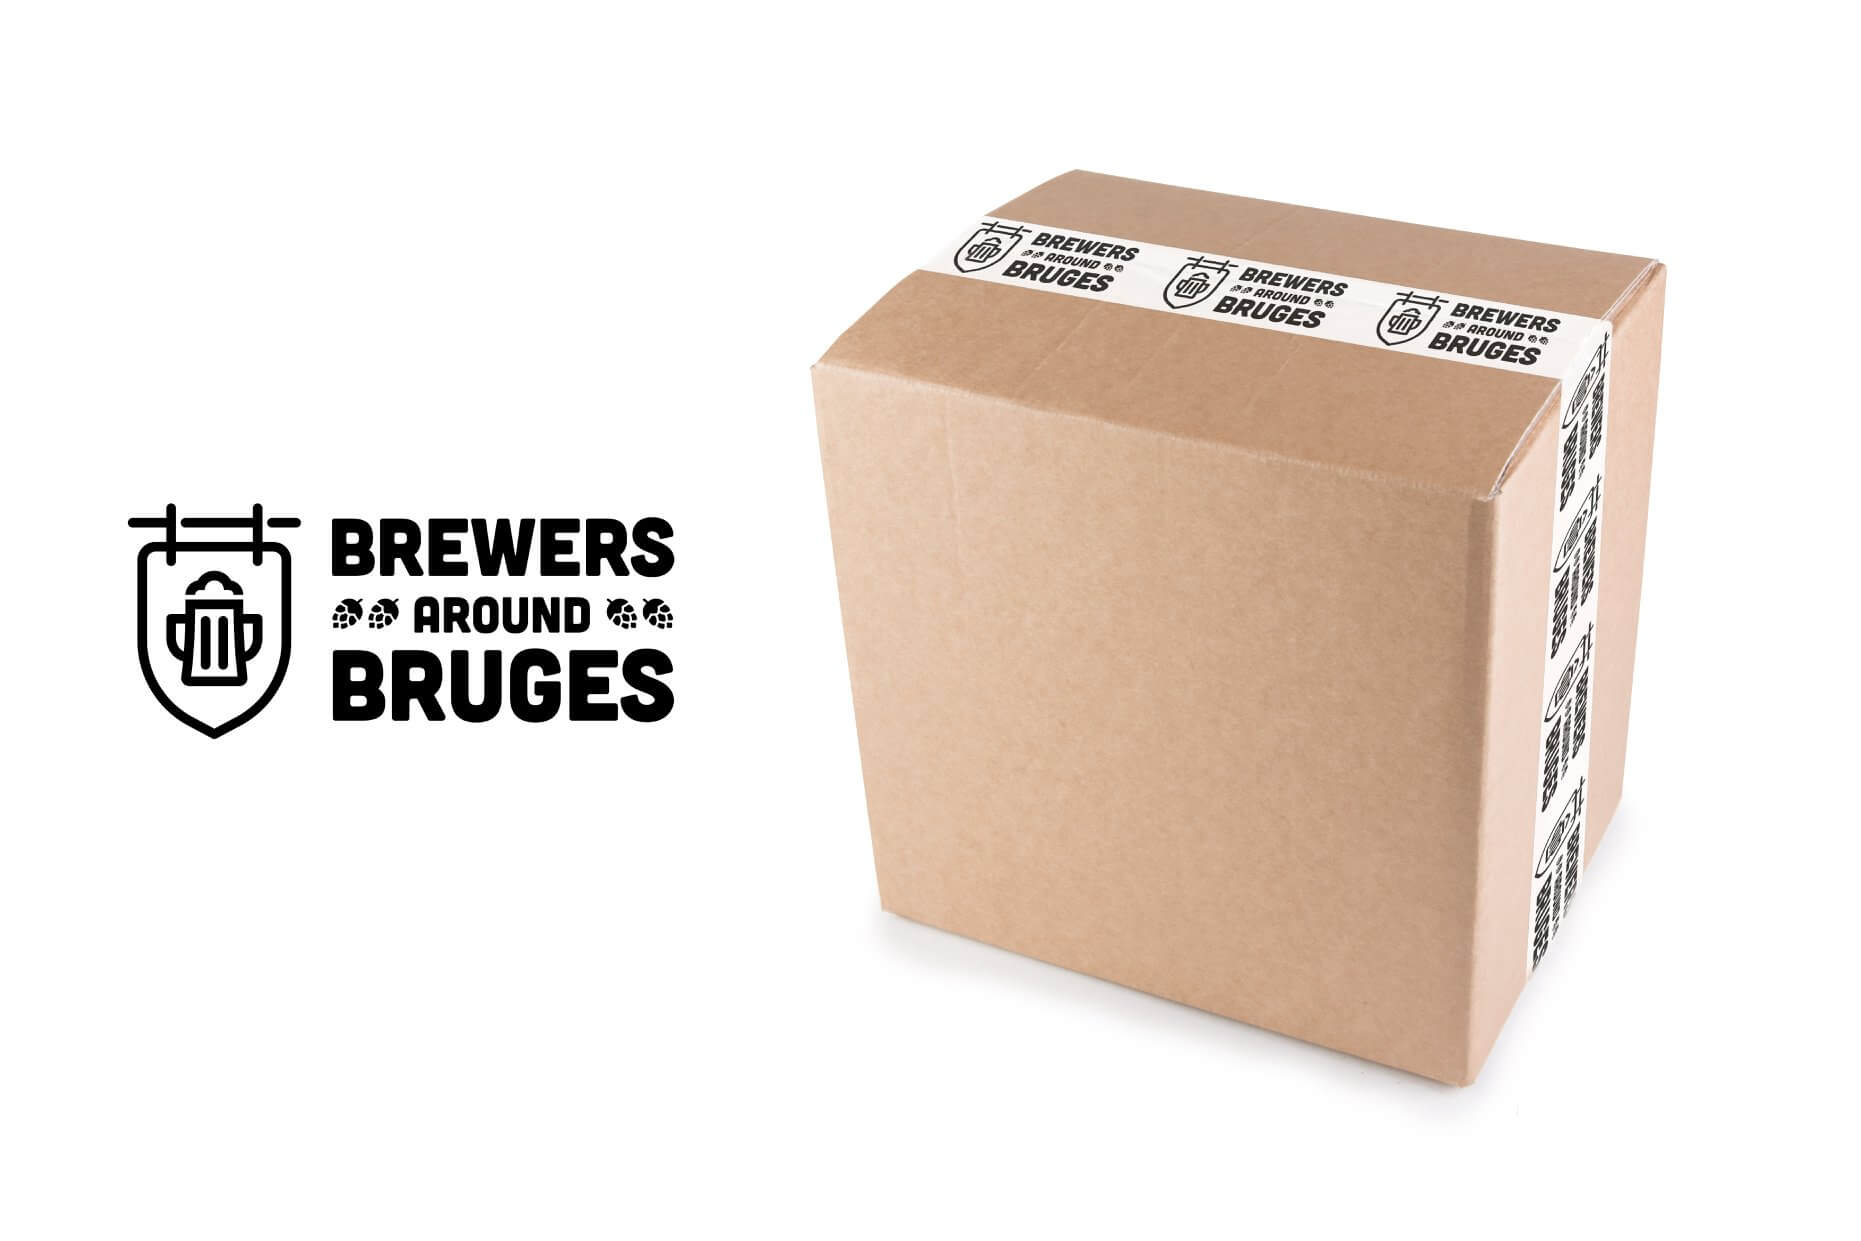 Brewers around Bruges create a beer discover box